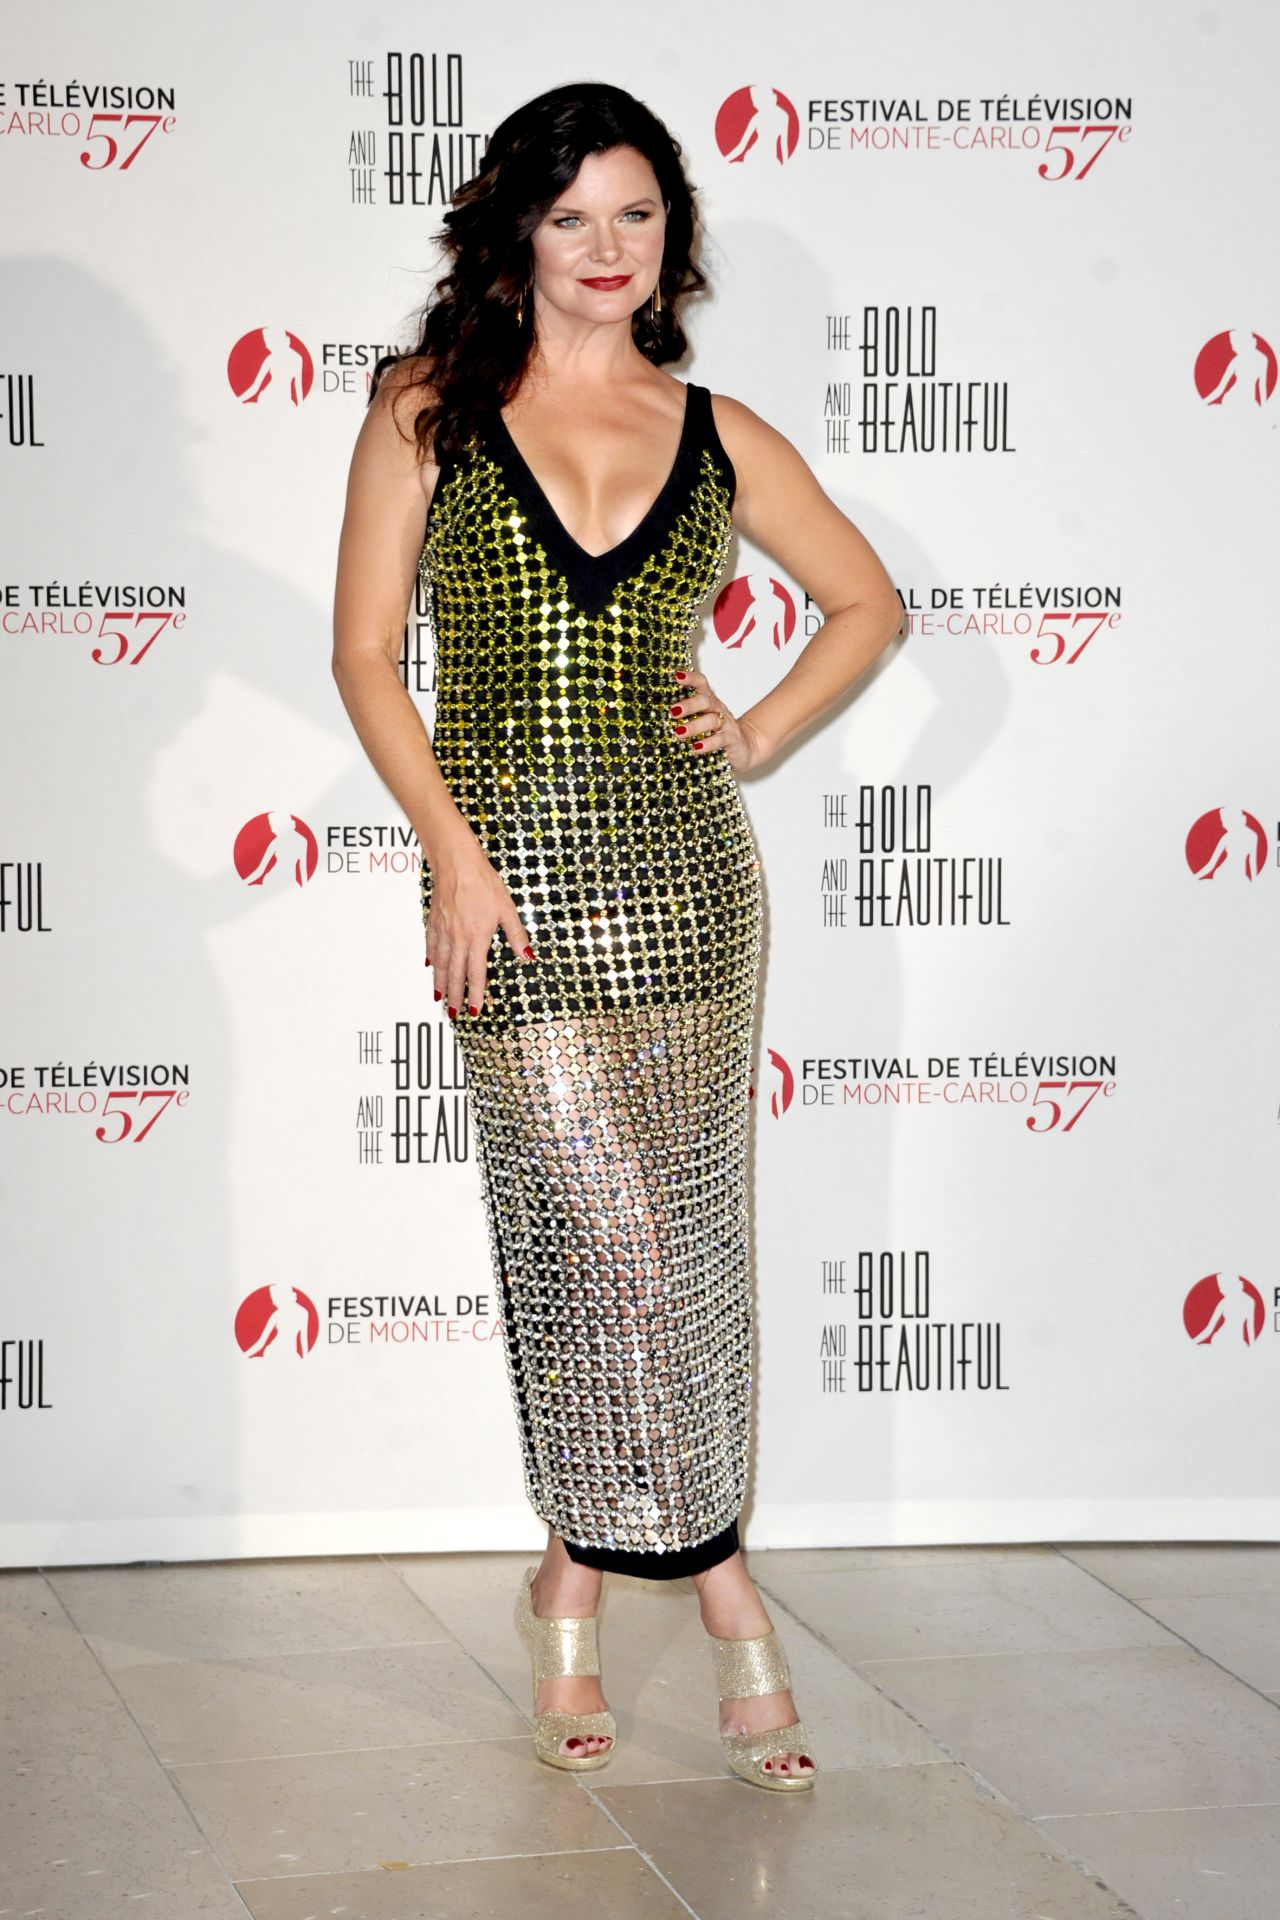 http://celebmafia.com/wp-content/uploads/2017/06/heather-tom-the-bold-and-the-beautiful-anniversary-event-at-monte-carlo-tv-festival-06-18-2017-1.jpg